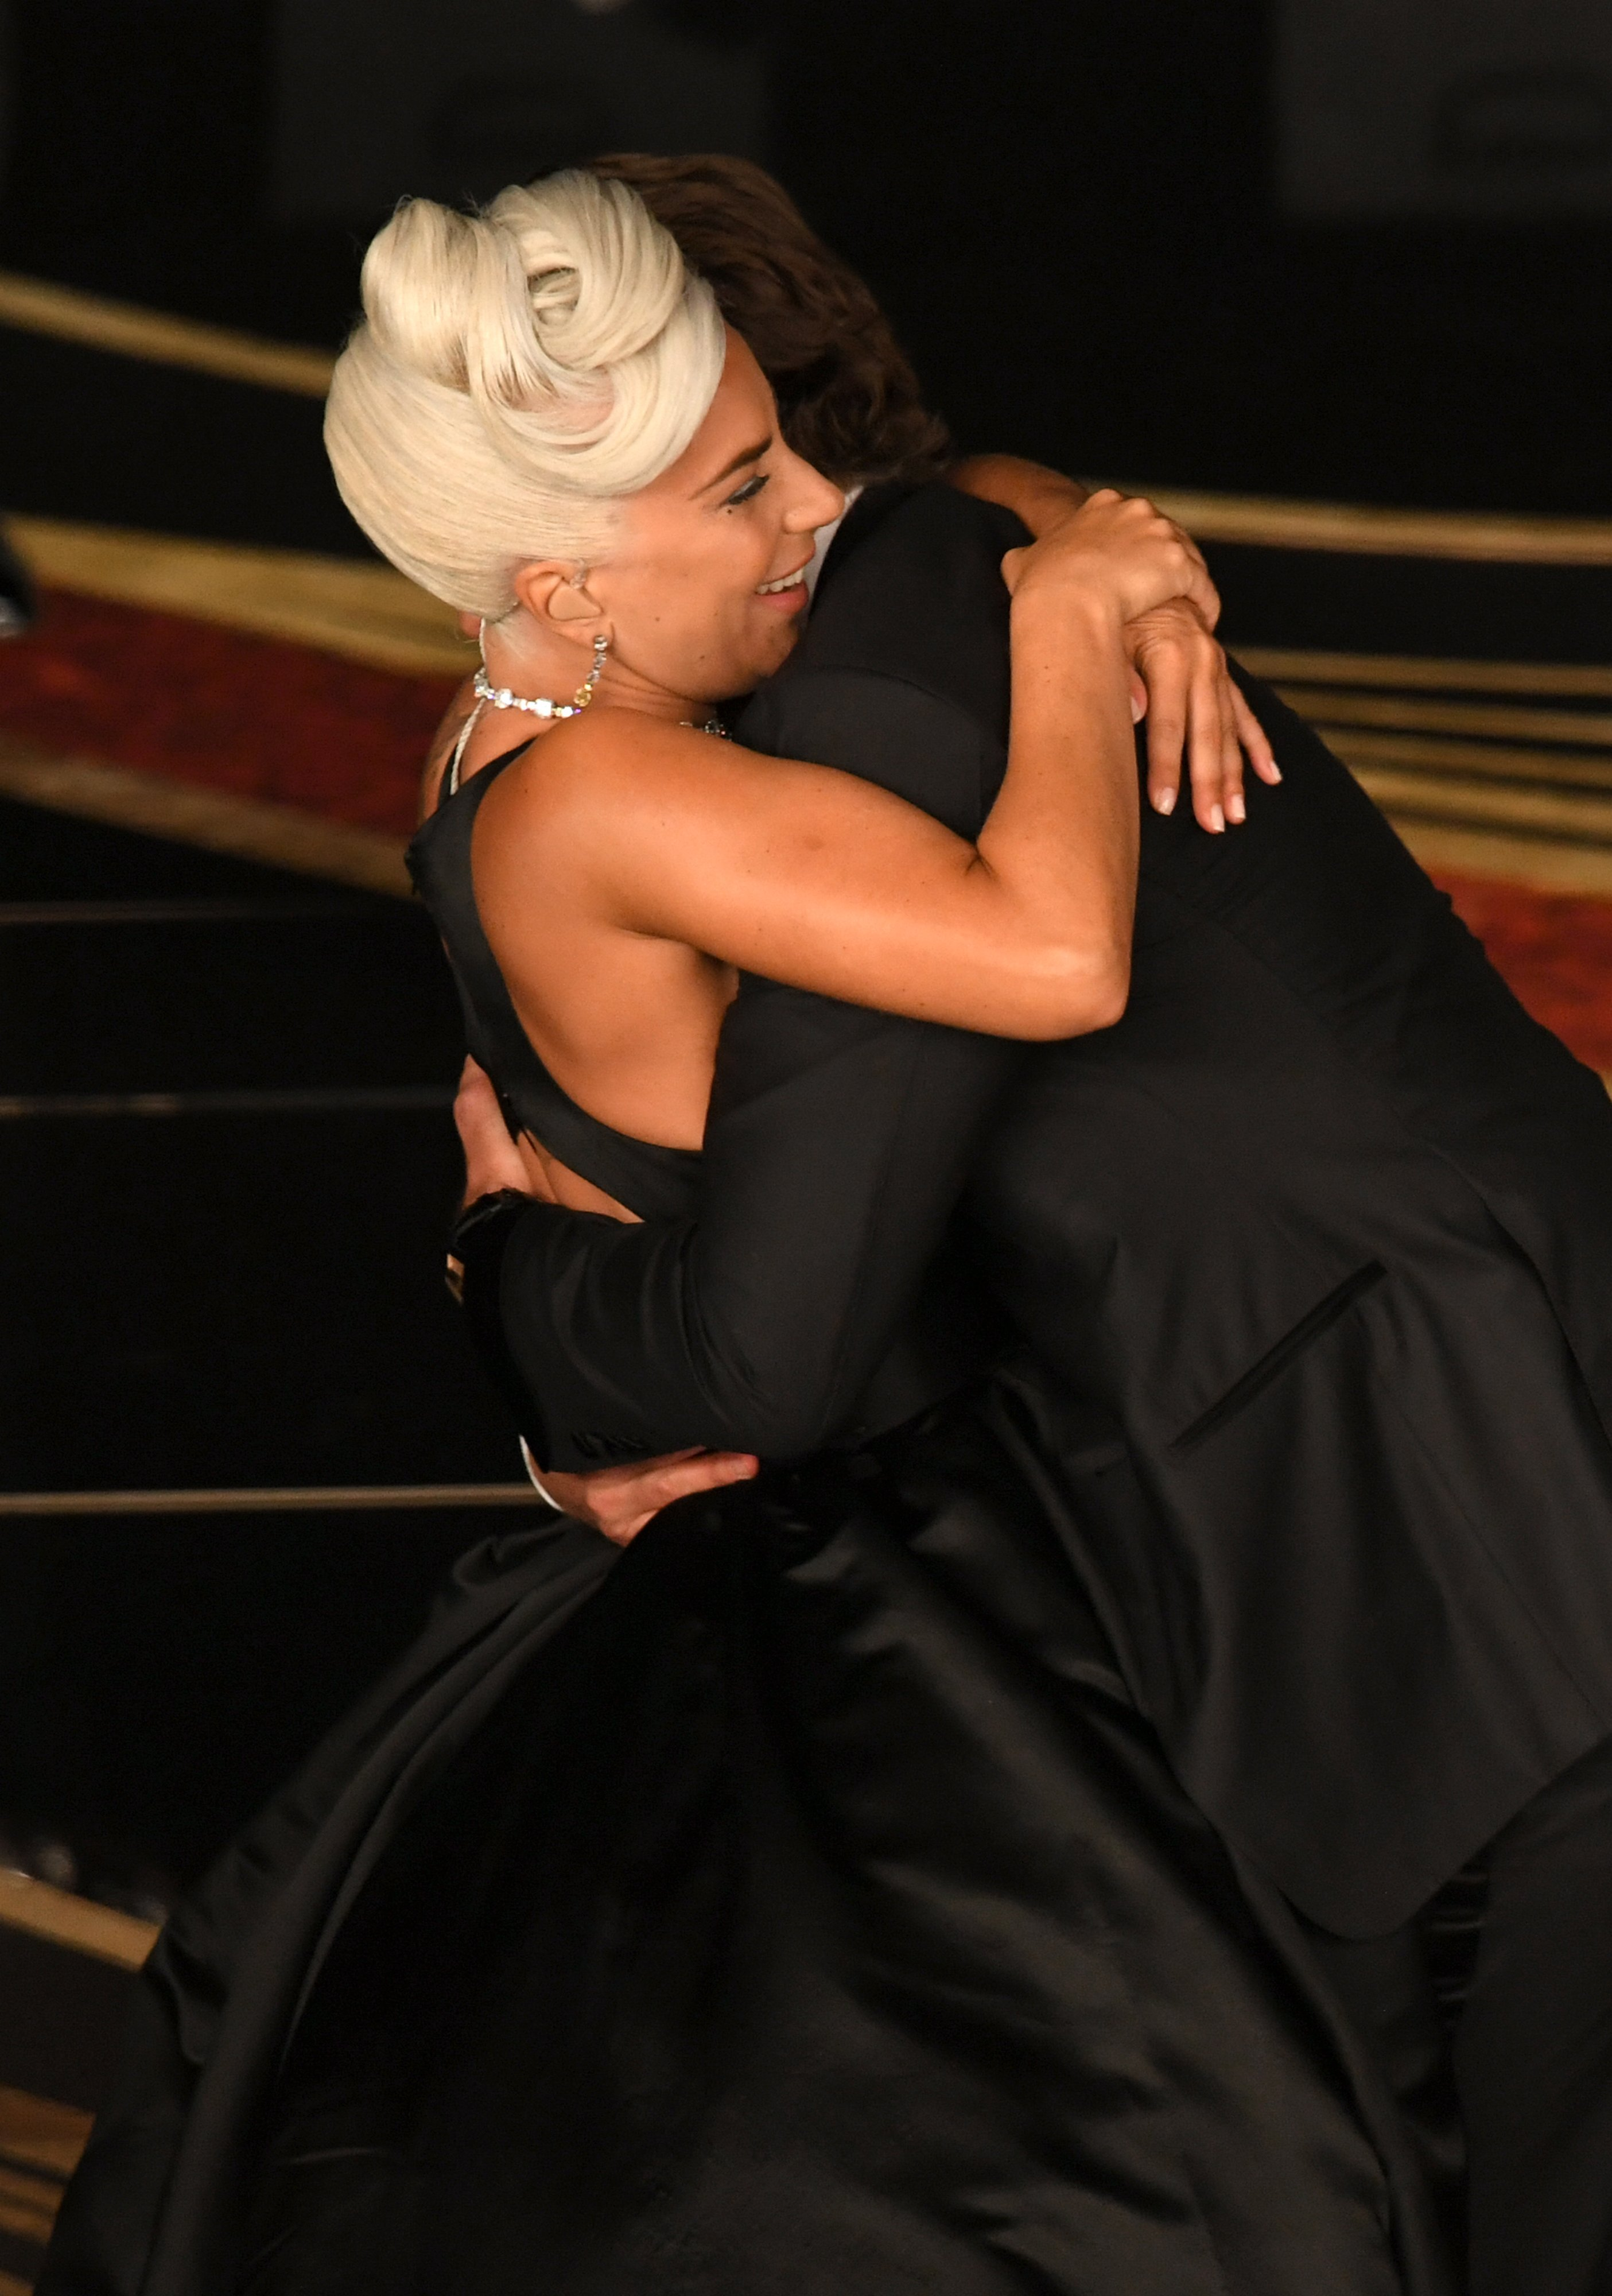 Lady Gaga and Bradley Cooper hugging on stage at the 91st Annual Academy Awards | Photo: Getty Images